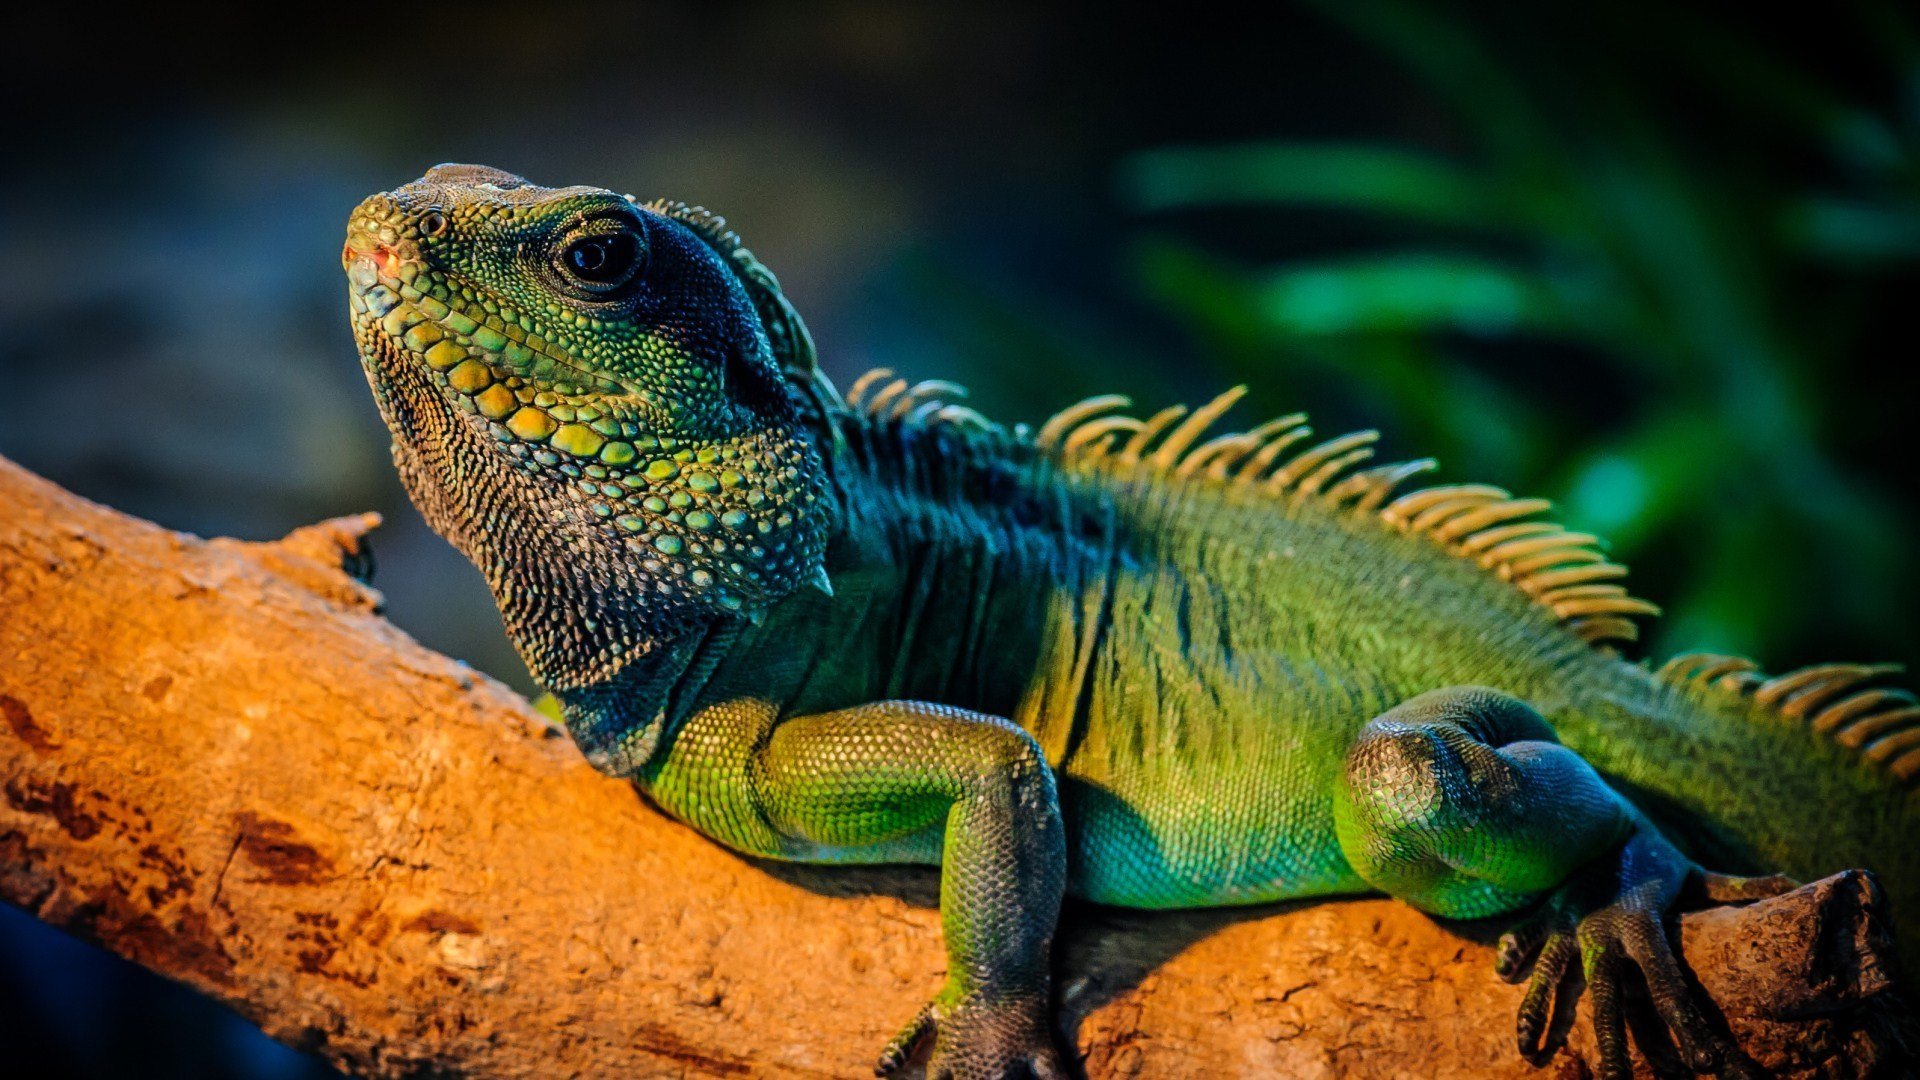 Best Iguana wallpaper ID:380983 for High Resolution full hd 1080p computer